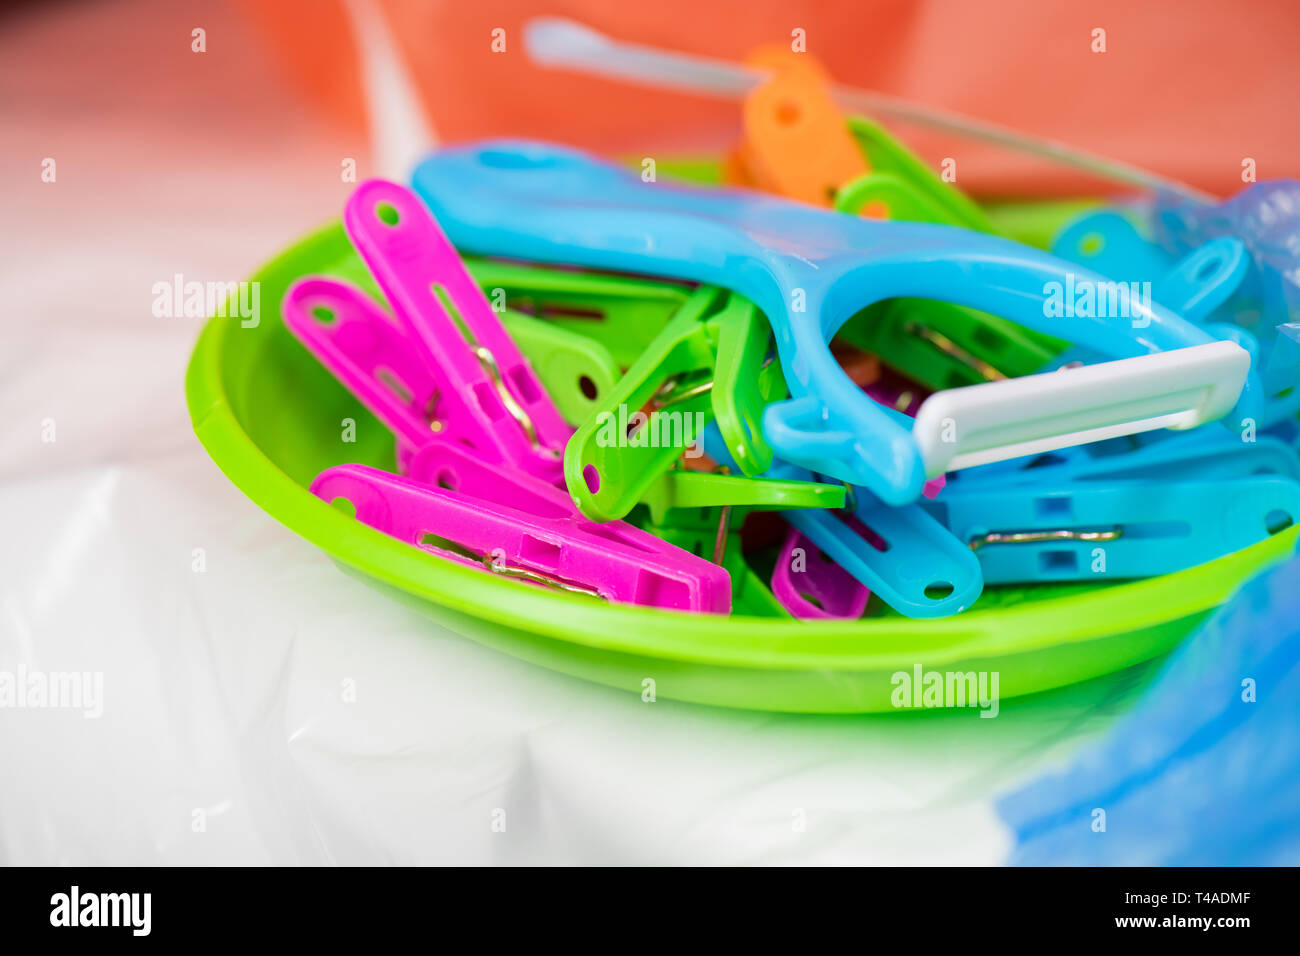 Useful tool made of harmful plastic being in pile with cheap pins - Stock Image